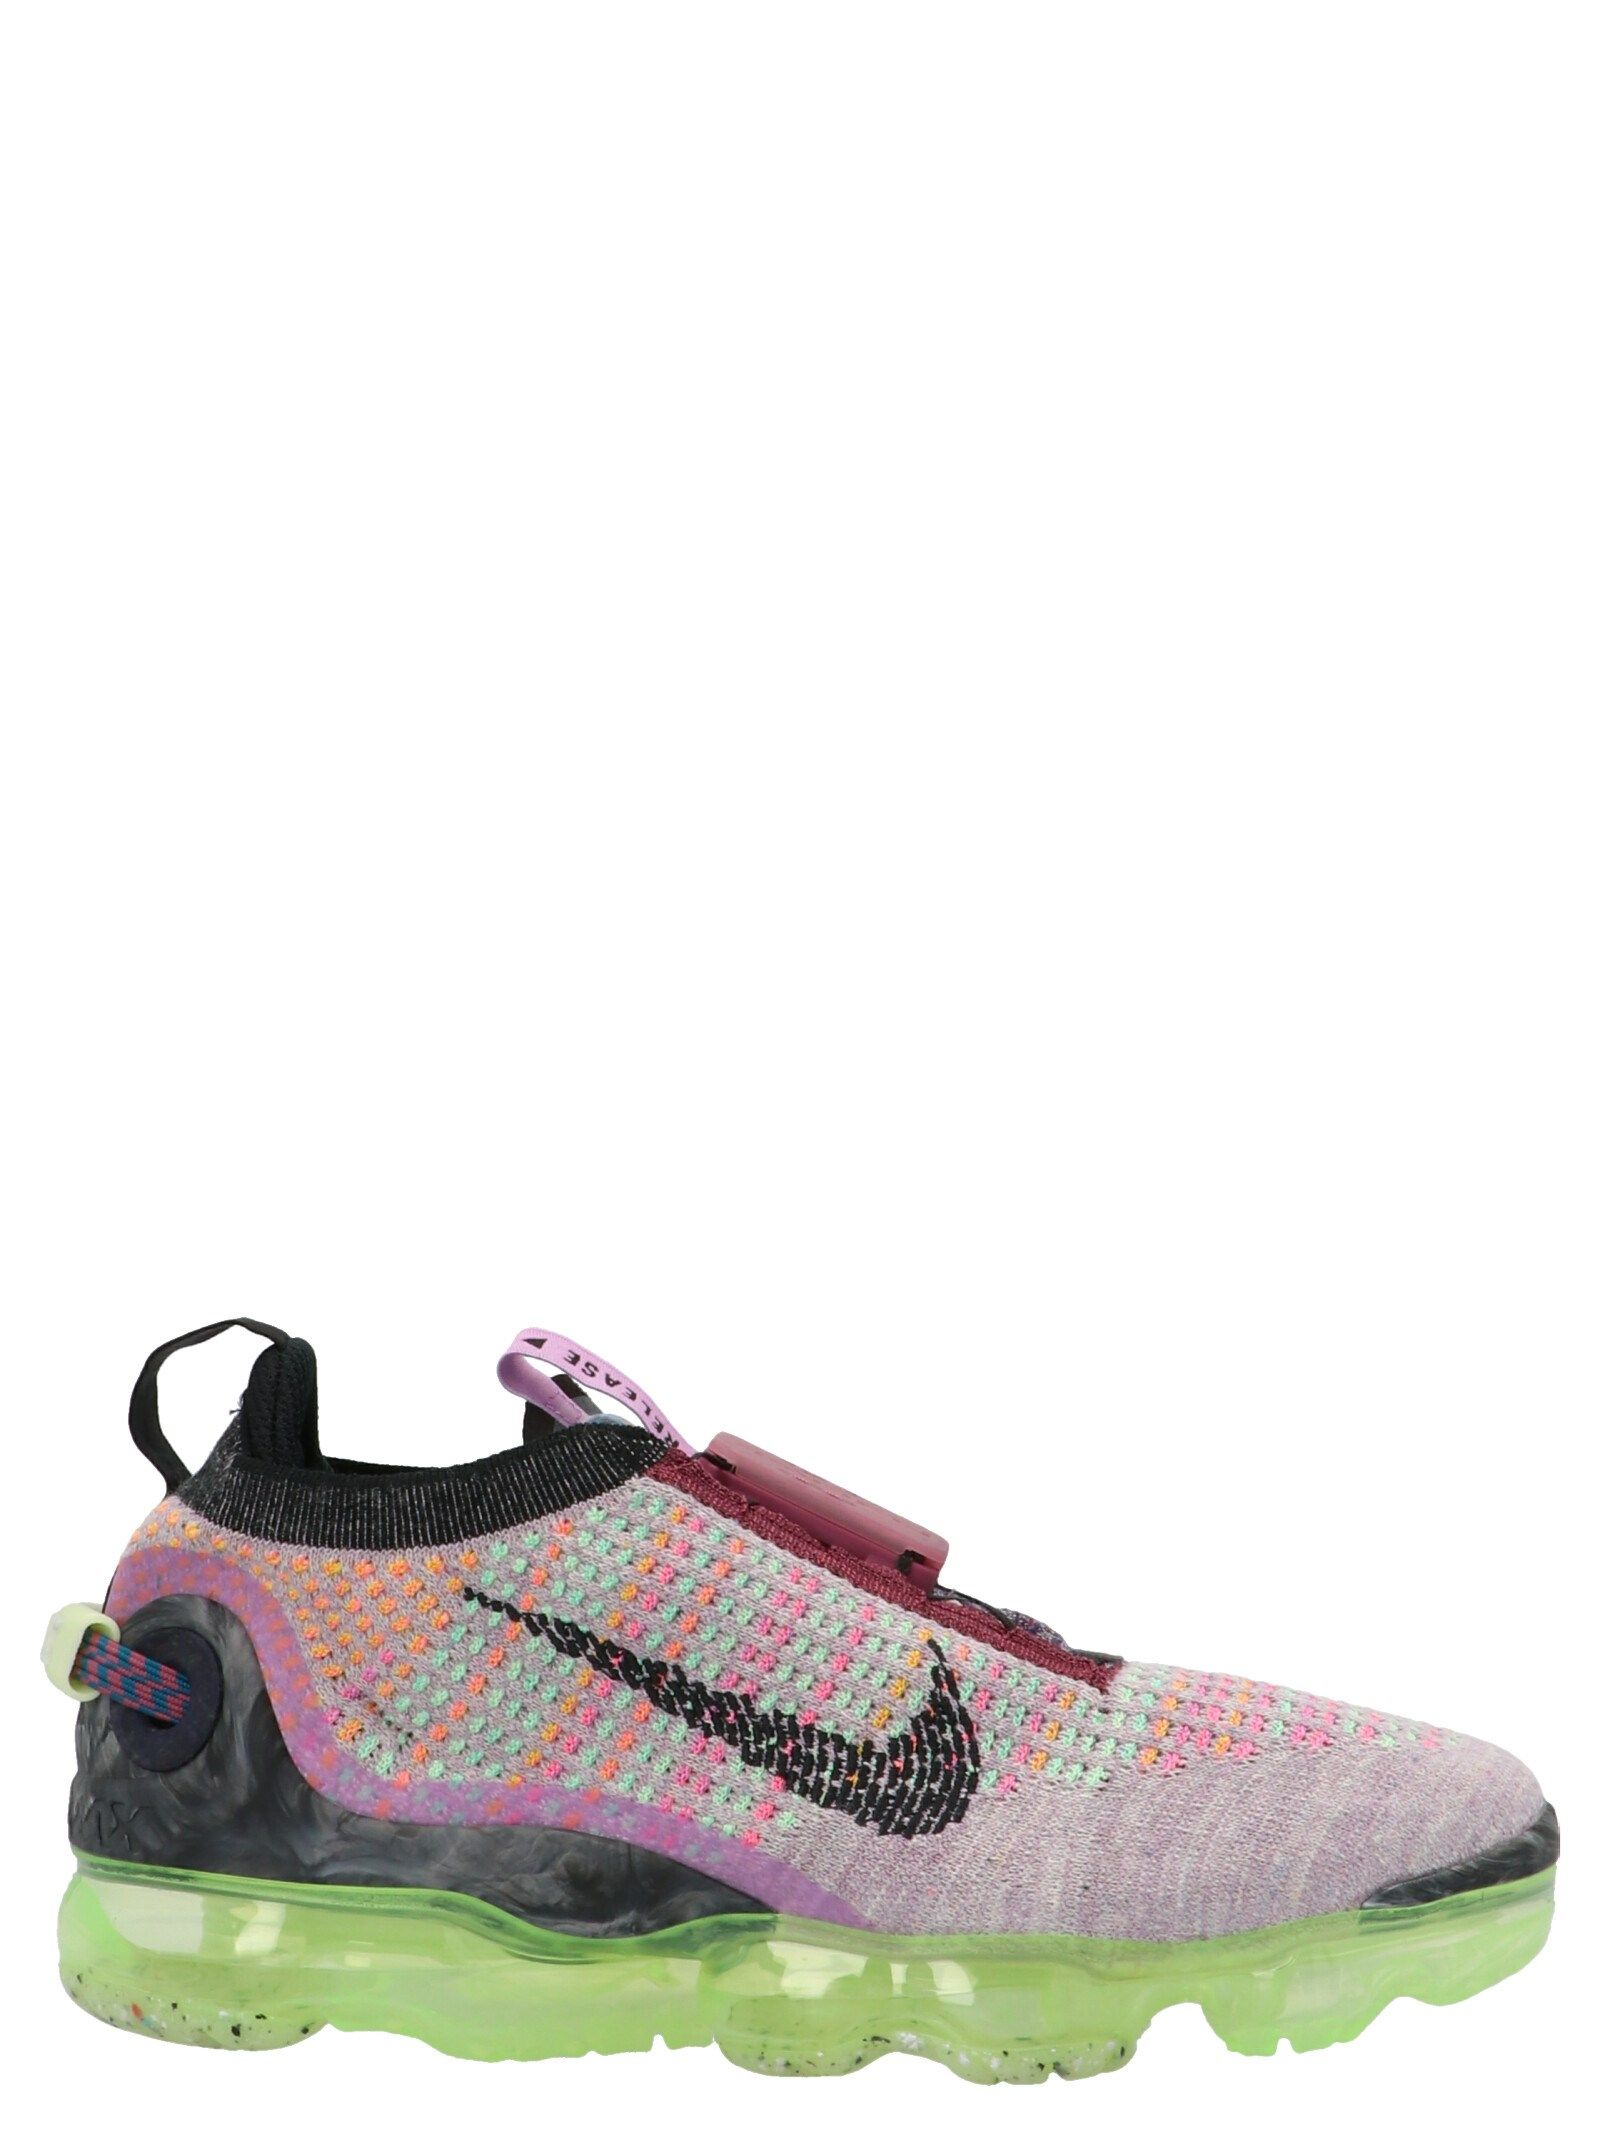 Nike Sneakers NIKE WOMEN'S CV8821501 MULTICOLOR OTHER MATERIALS SNEAKERS